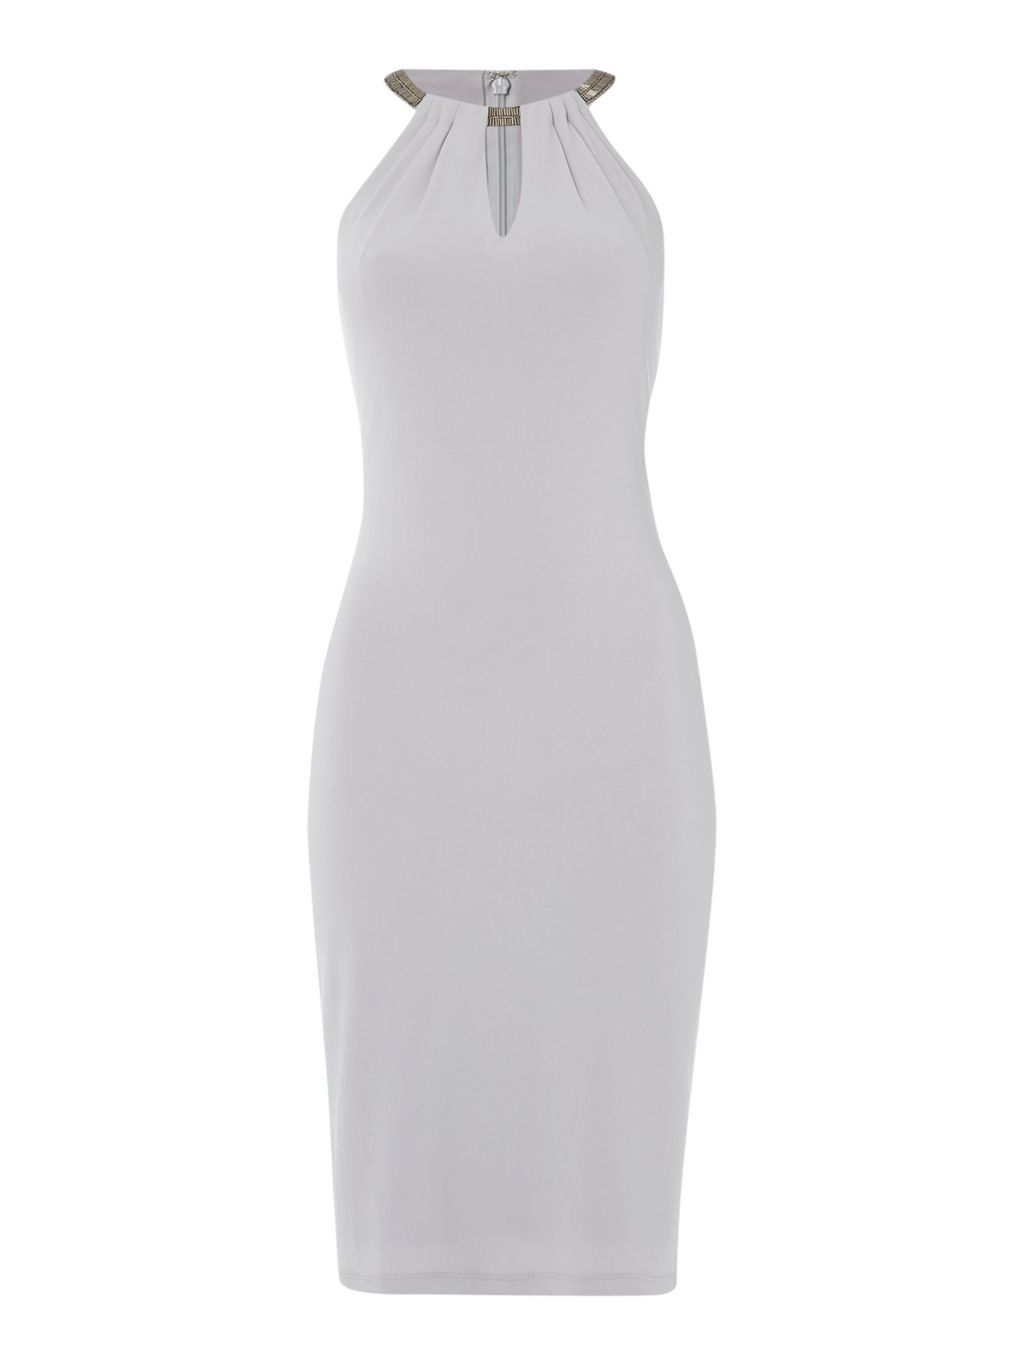 Jersey Lace Halter Gown, Silver - fit: tight; pattern: plain; sleeve style: sleeveless; style: bodycon; predominant colour: silver; occasions: evening; length: on the knee; neckline: peep hole neckline; fibres: polyester/polyamide - stretch; sleeve length: sleeveless; texture group: jersey - clingy; pattern type: fabric; season: s/s 2016